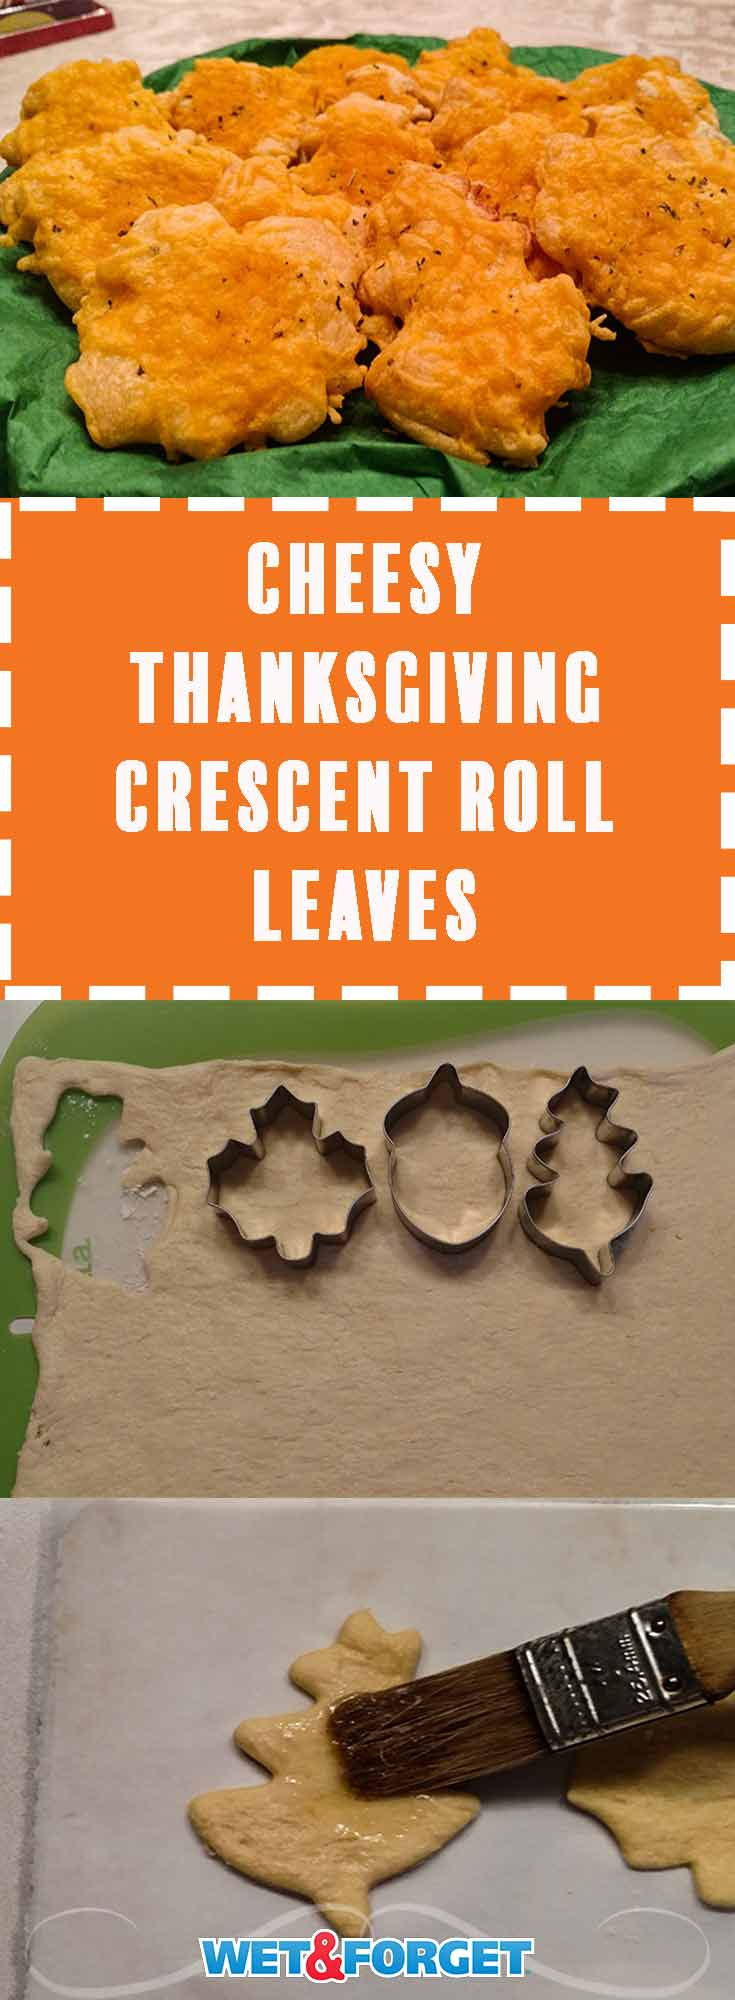 This quick cheesy crescent roll leaves recipe will make a great appetizer at your Thanksgiving or Friendsgiving dinner!